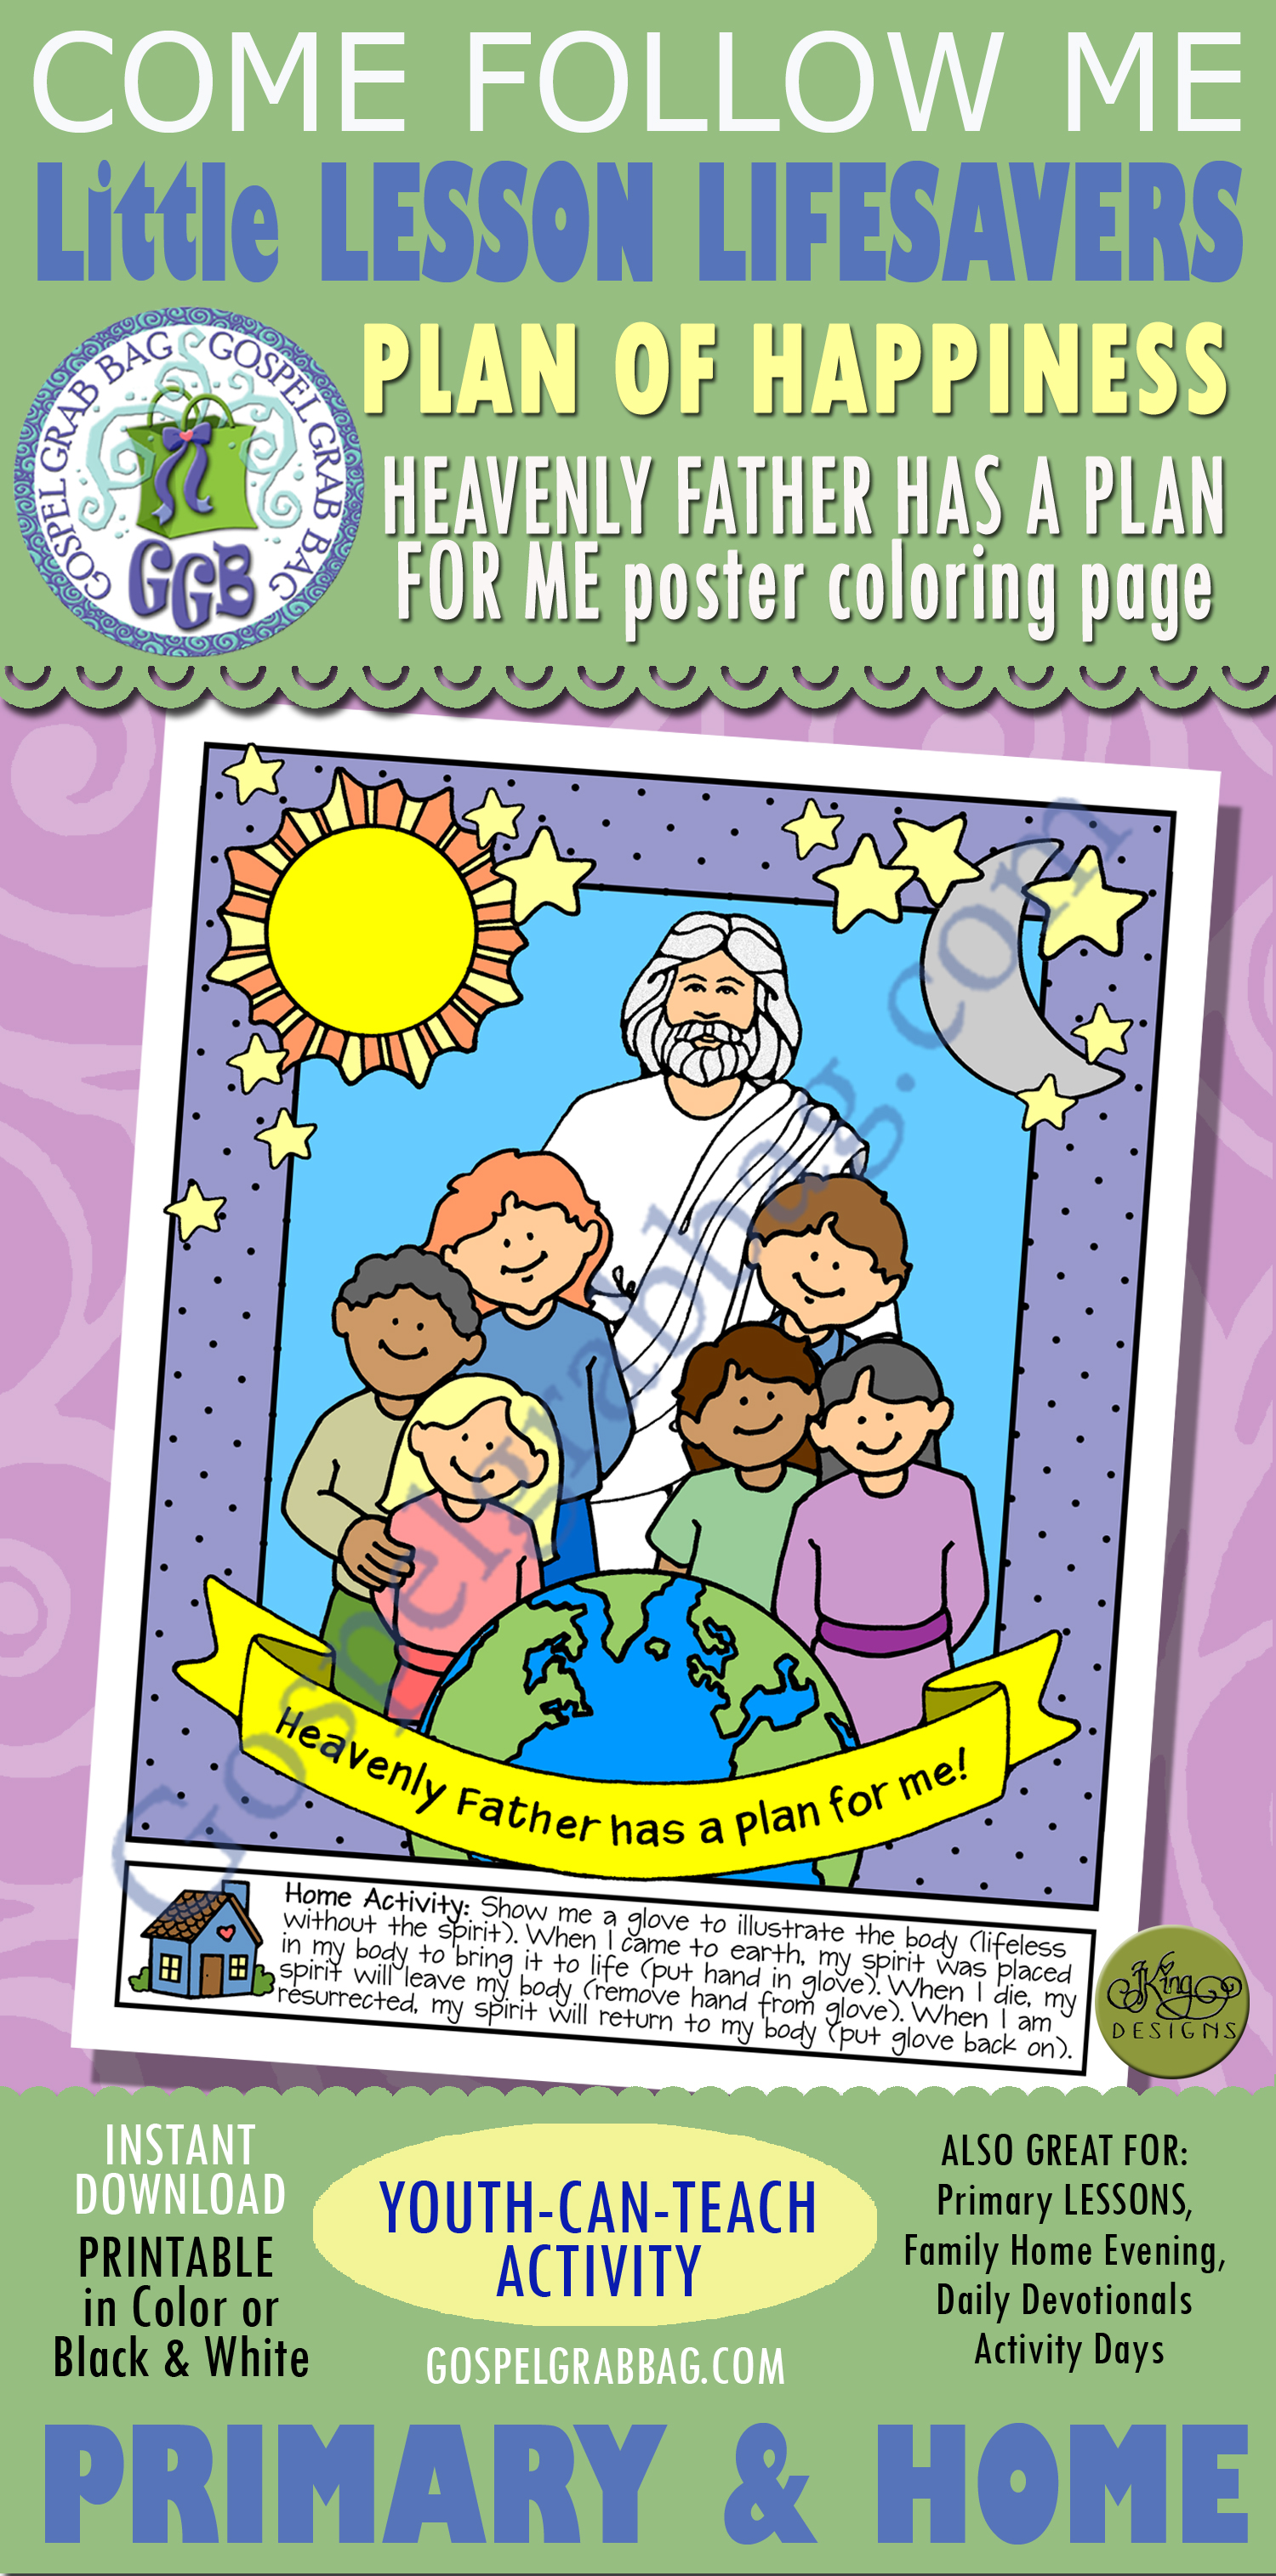 Primary Lesson Helps Nursery Lesson 2 Or Sunbeam Lesson 3 Heavenly Father Has A Plan For Me Us Gospel Grab Bag Anyanya jae cek pinned  @timeofourlifeu 9 дек. primary lesson helps nursery lesson 2 or sunbeam lesson 3 heavenly father has a plan for me us gospel grab bag